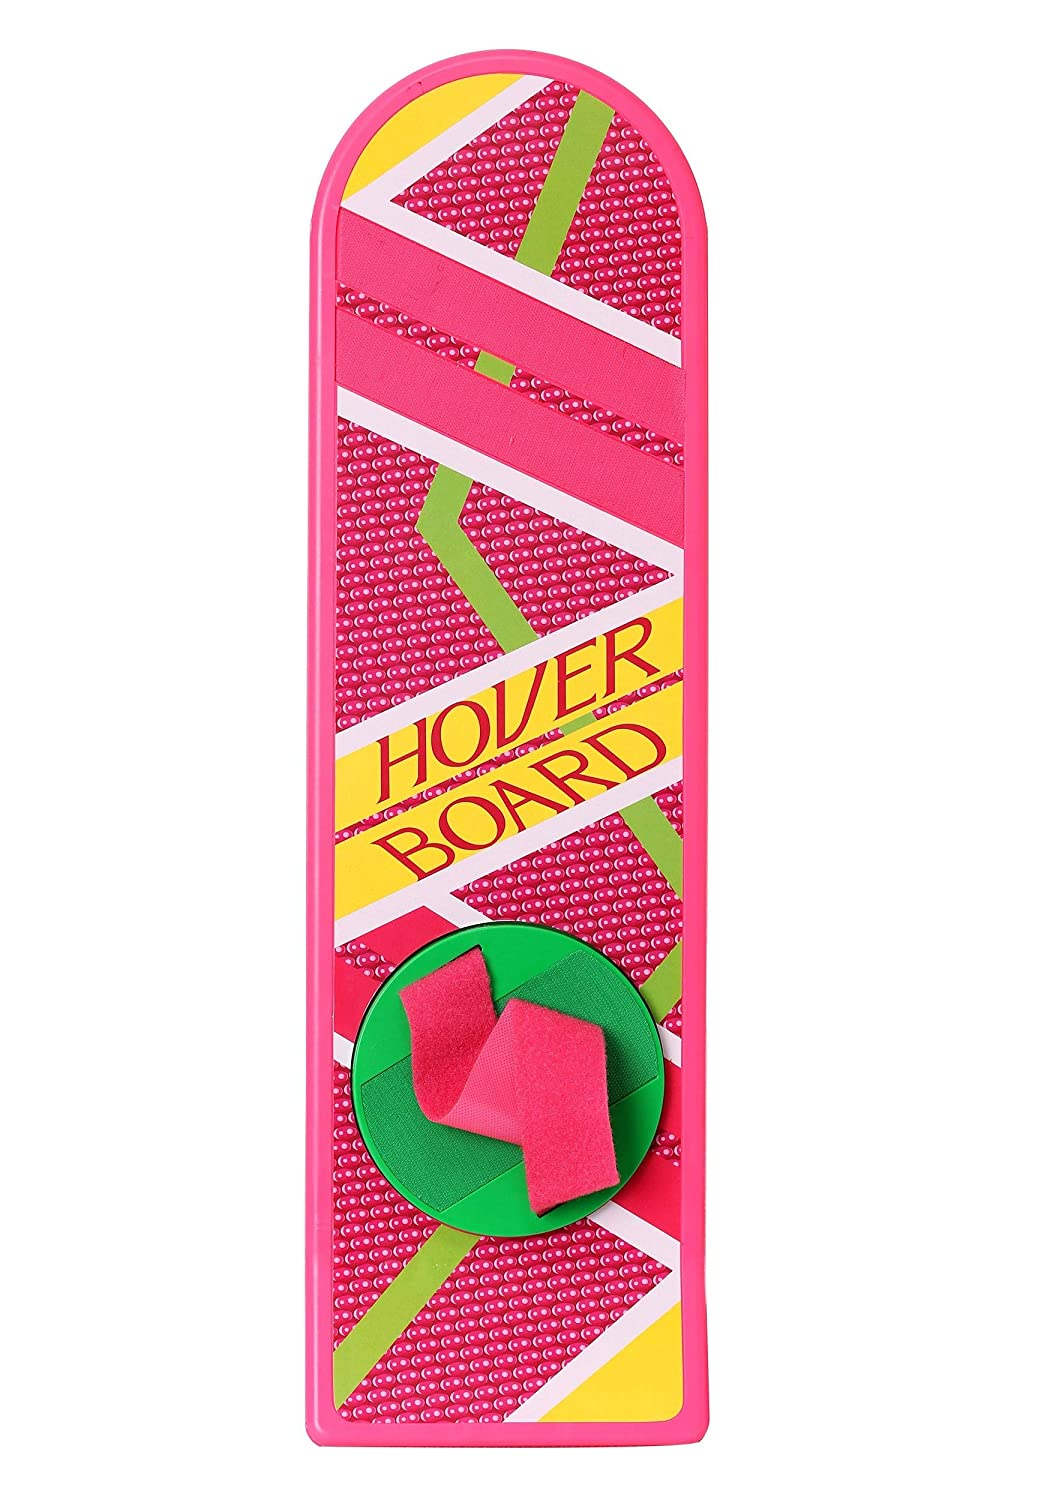 Fun Costumes Officially Licensed Back to The Future 1:1 Scale Hoverboard